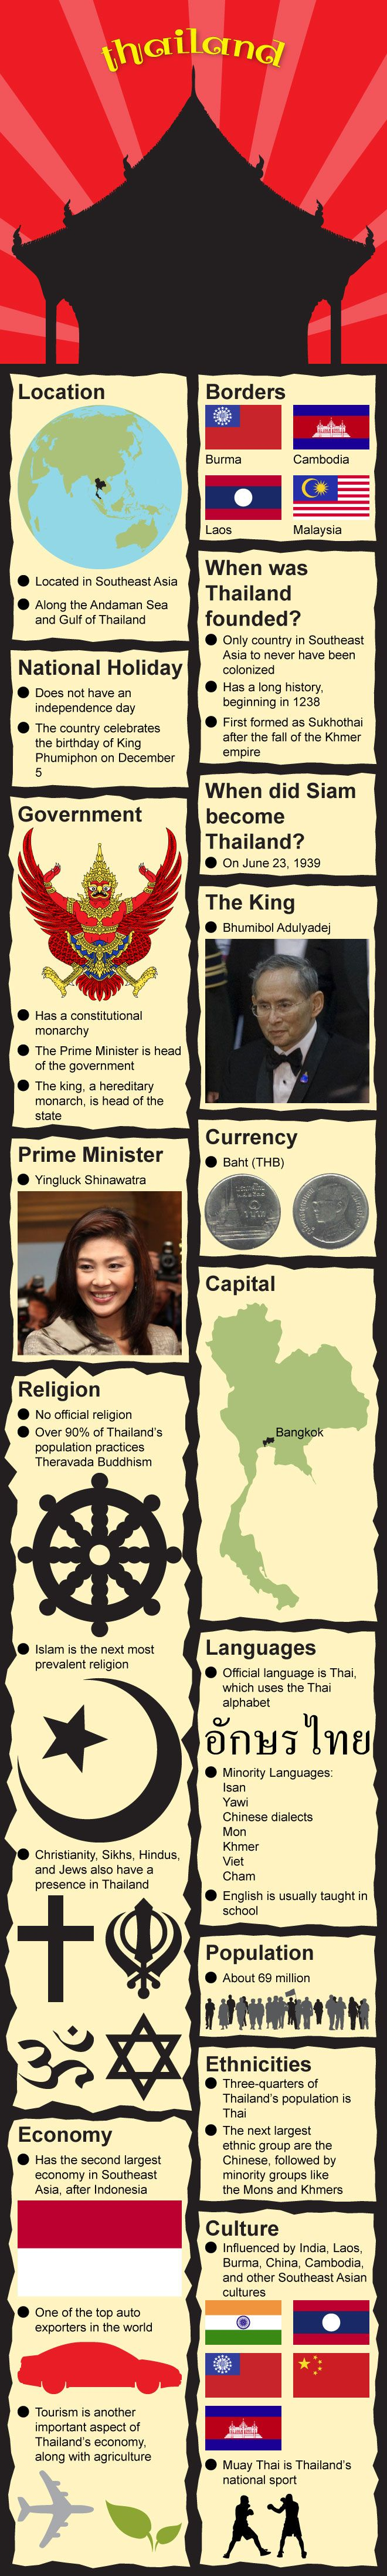 http://www.mapsofworld.com/pages/fast-facts/infographic-of-thailand-fast-facts/